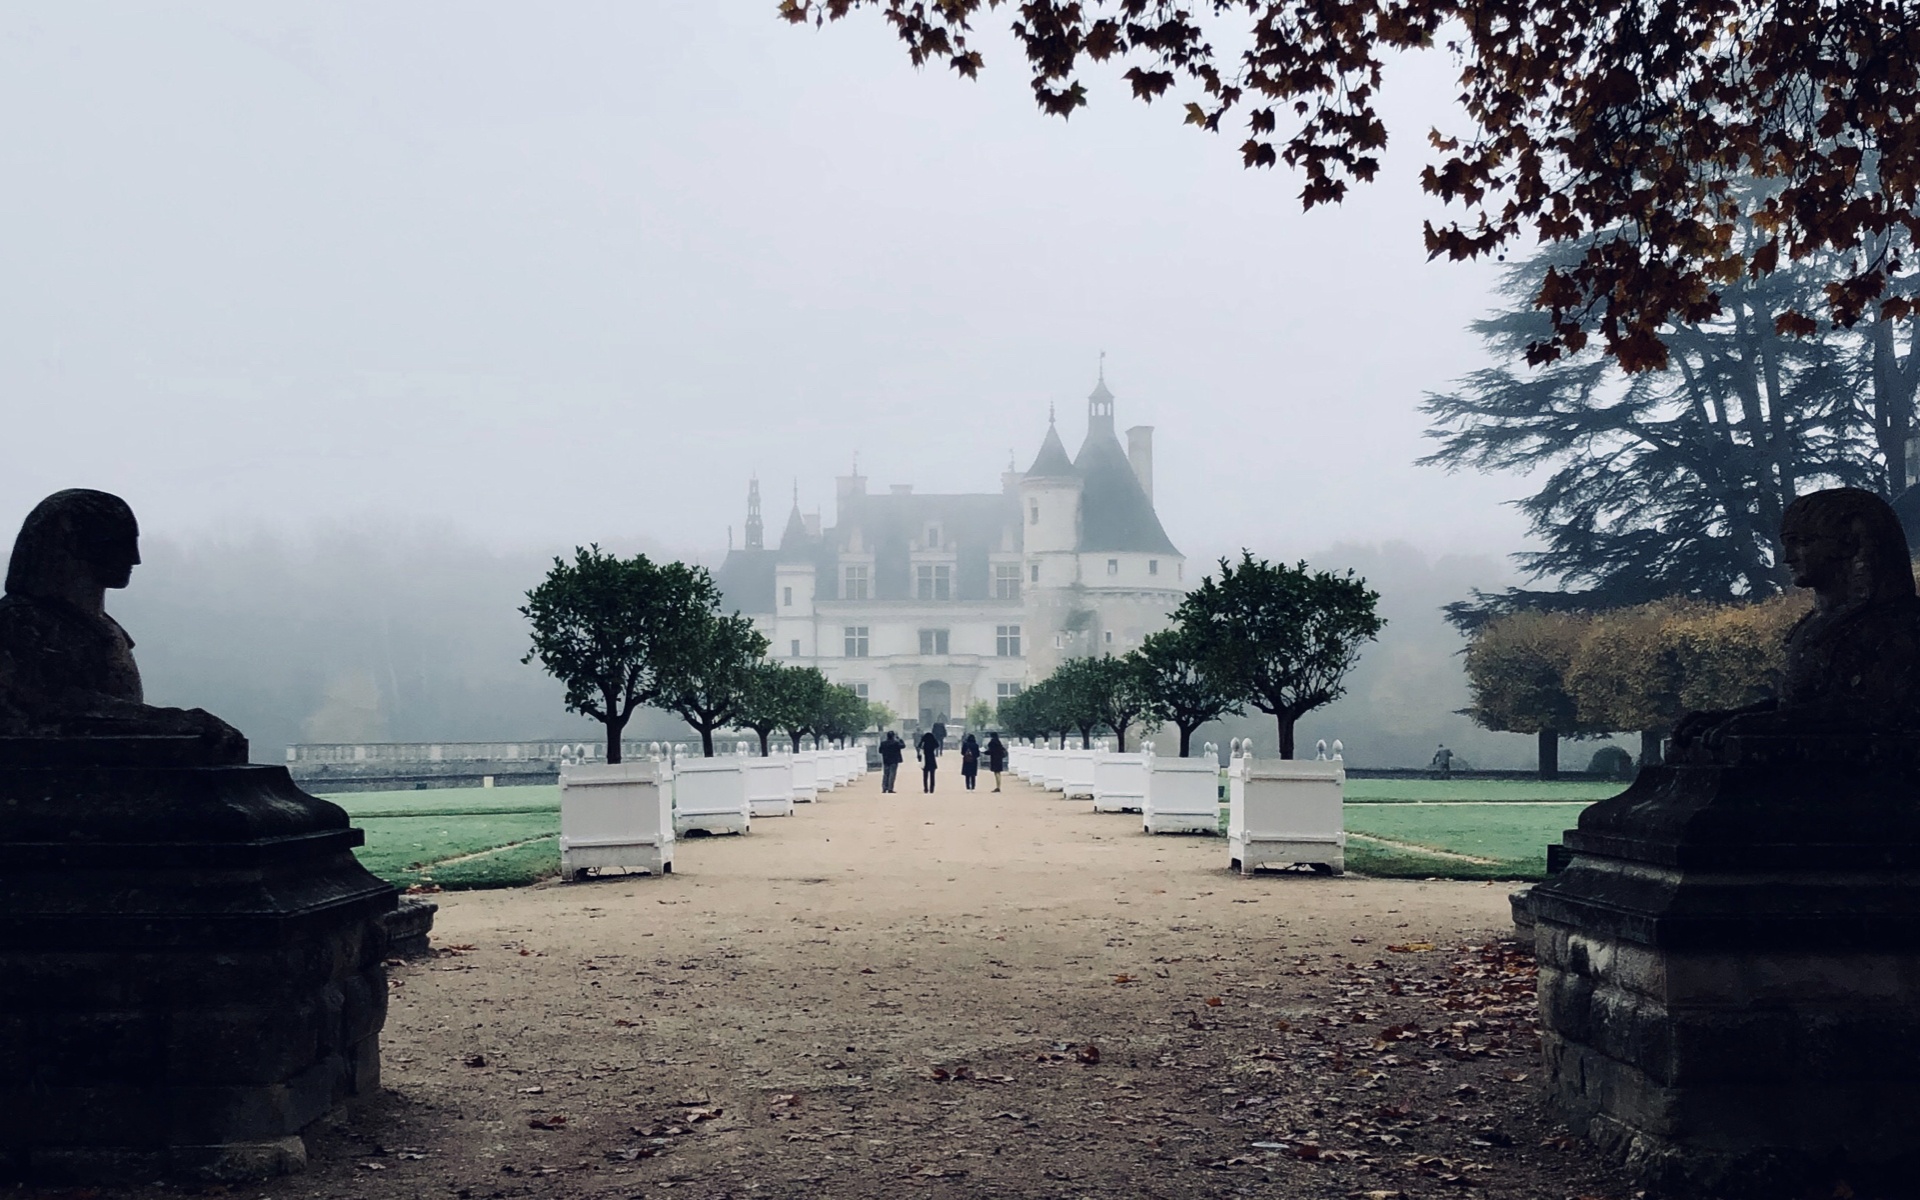 Things to do in the Loire Valley